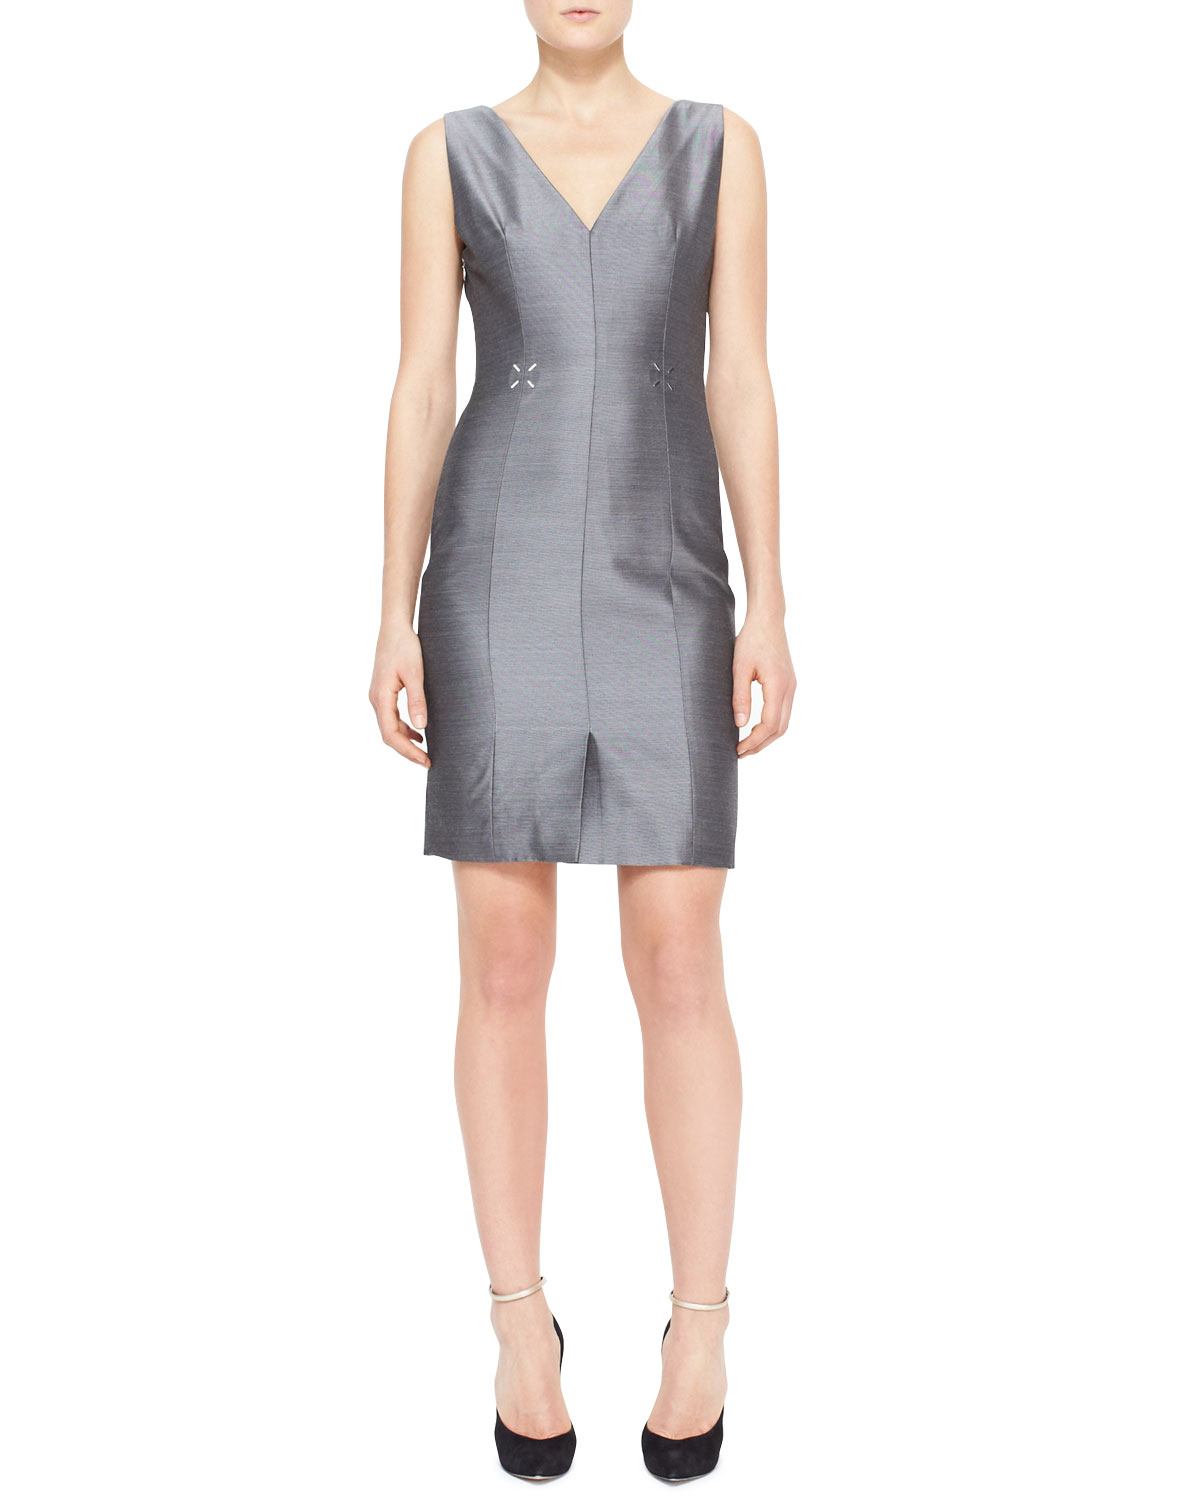 Womens V Neck Sleeveless Suiting Dress with Sharkskin Sheen   Alexander Wang